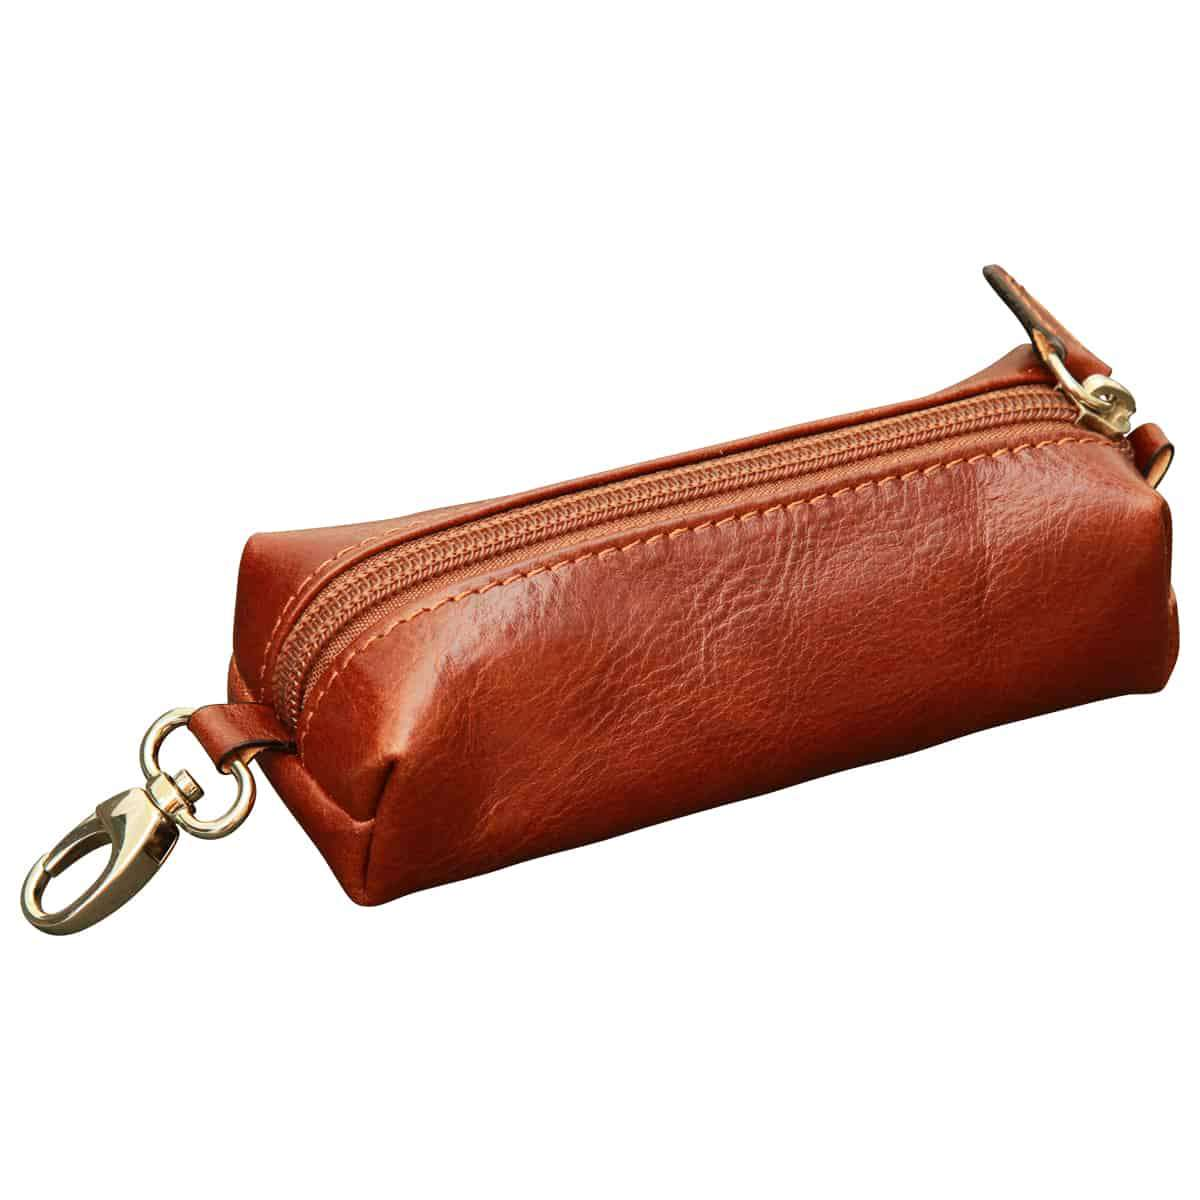 Leather Key Chain with zip closure - Brown | 557705MA | EURO | Old Angler Firenze